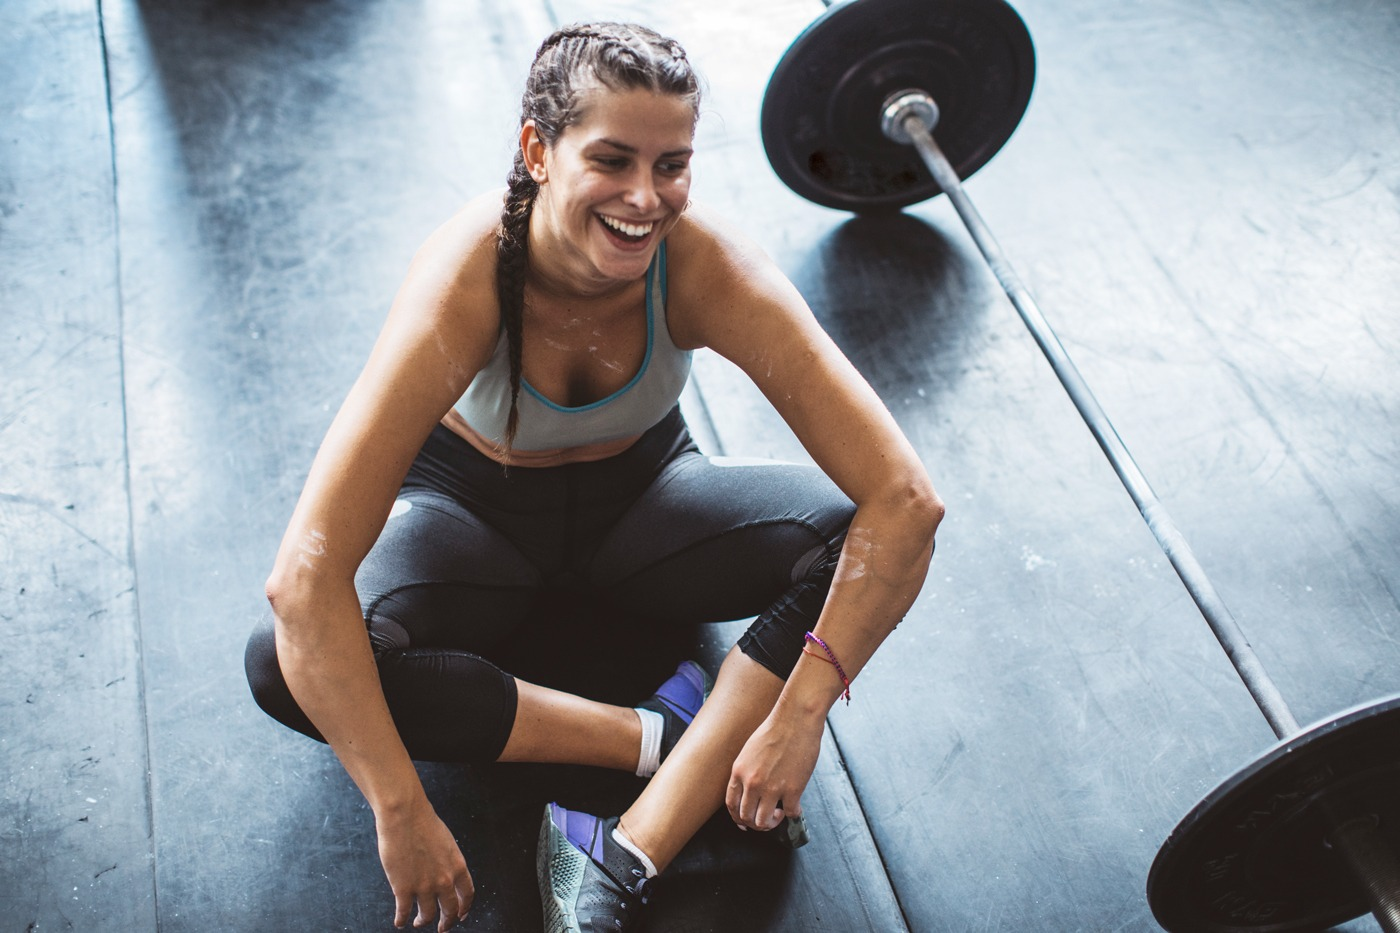 How to protect your joints during an intense workout, according to HIIT trainers